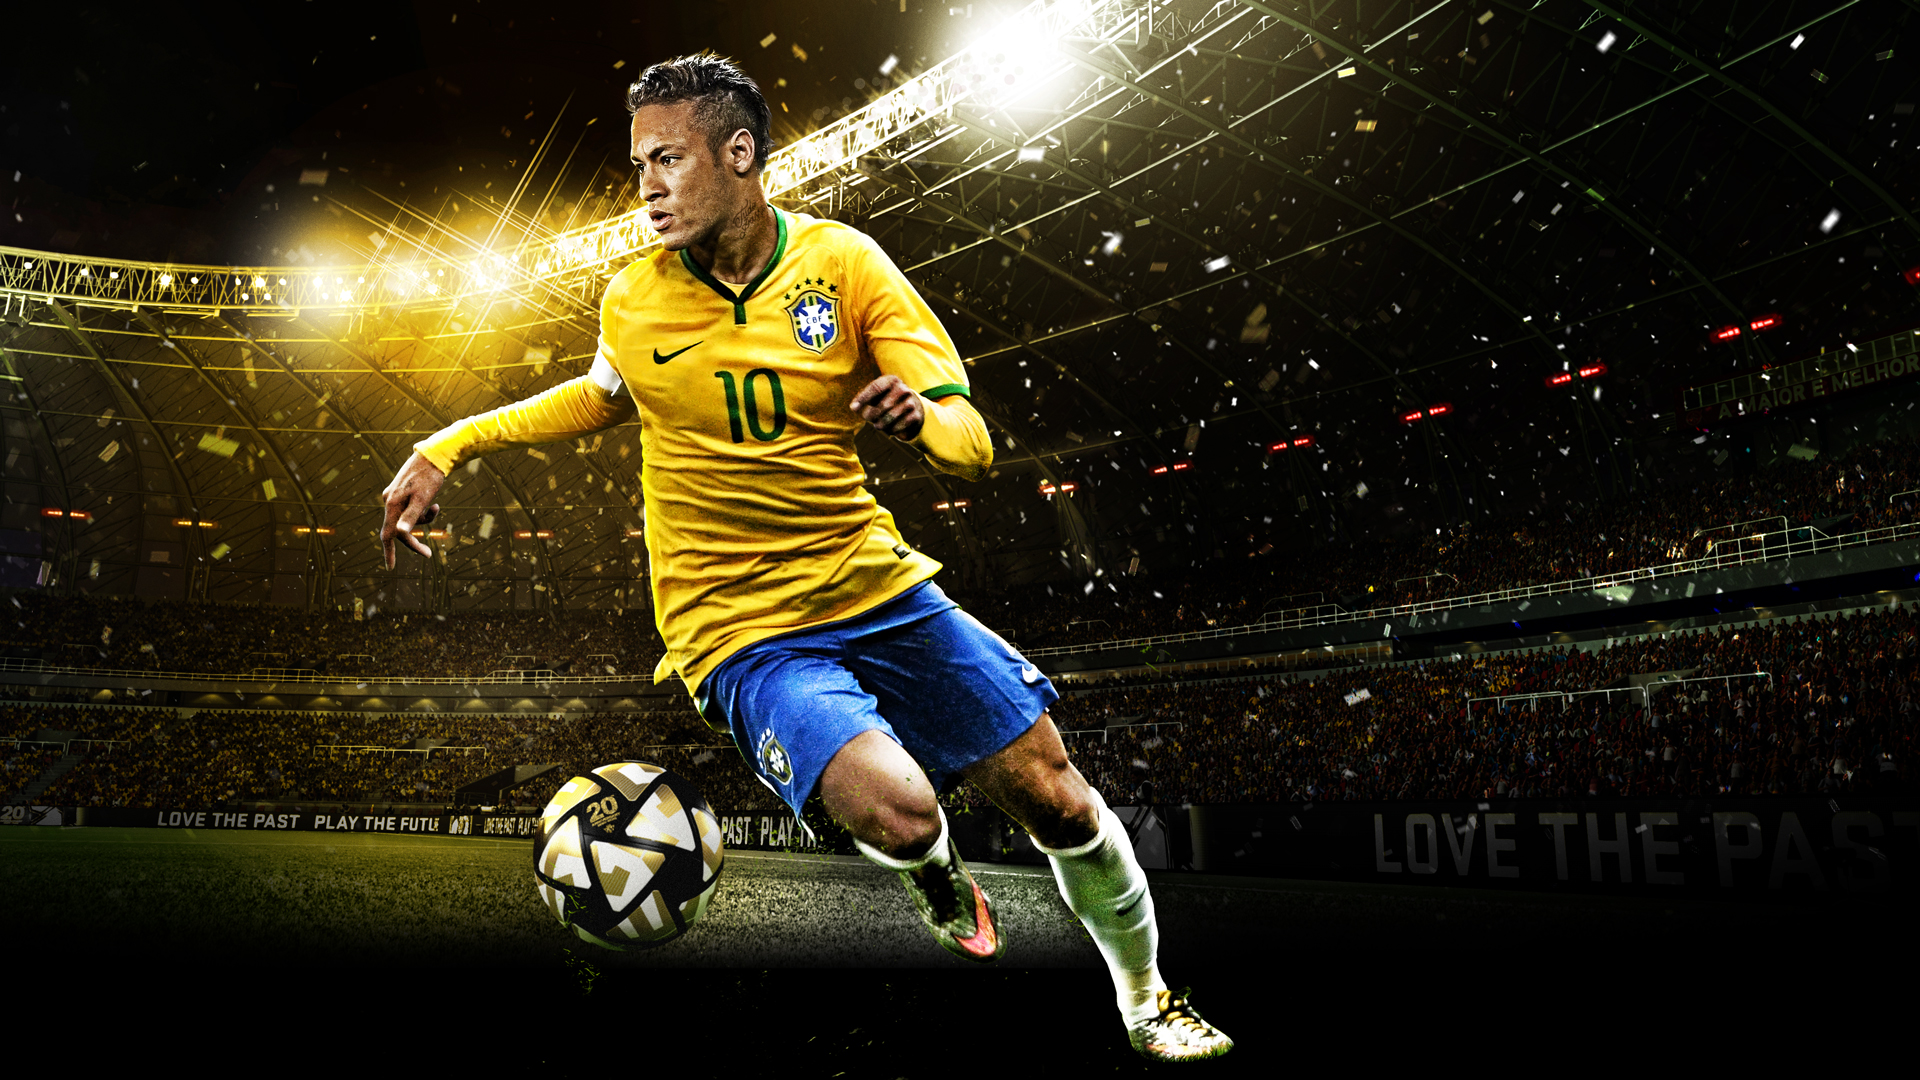 Pro Evolution Soccer 2016 high quality wallpapers